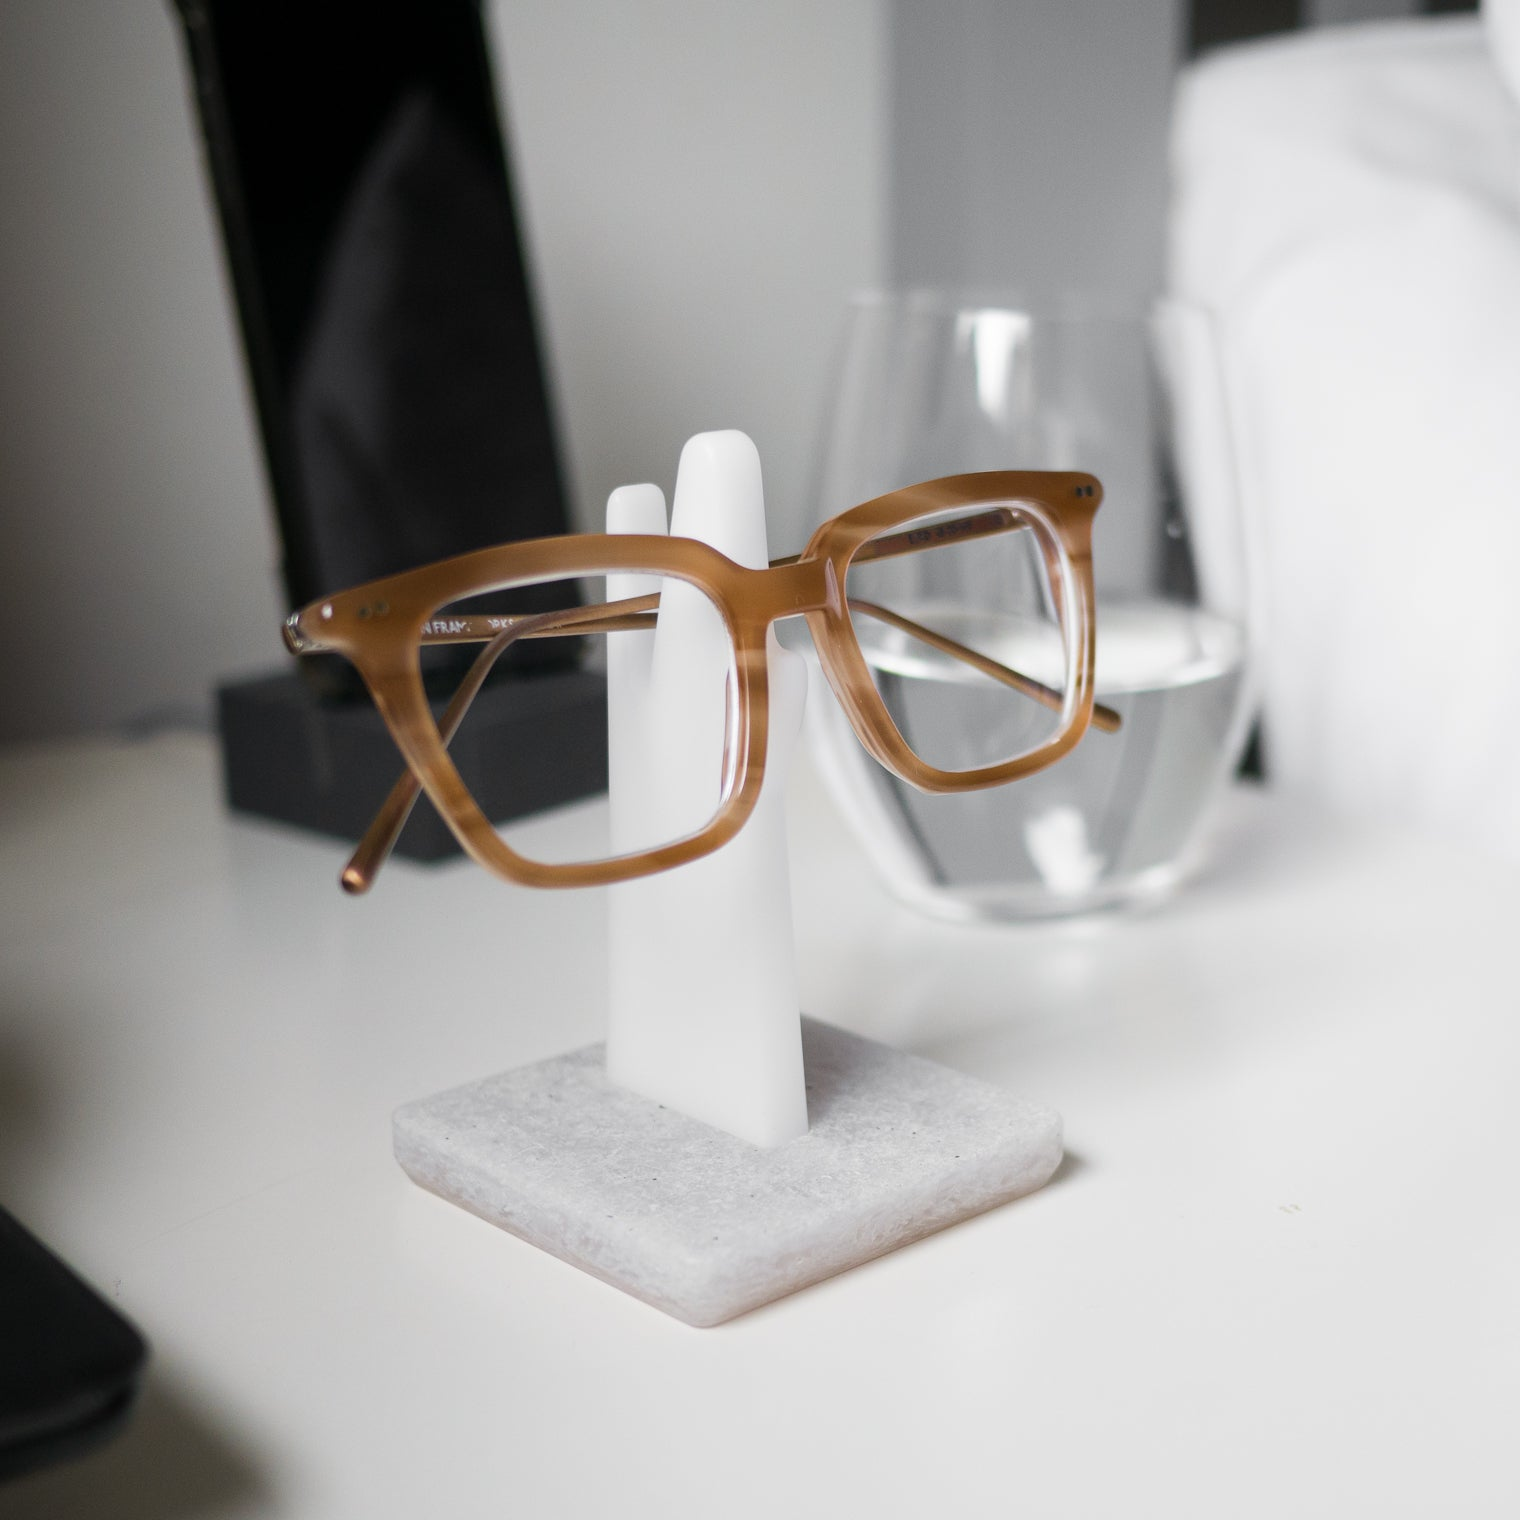 Amber glasses resting on white spectacle stand